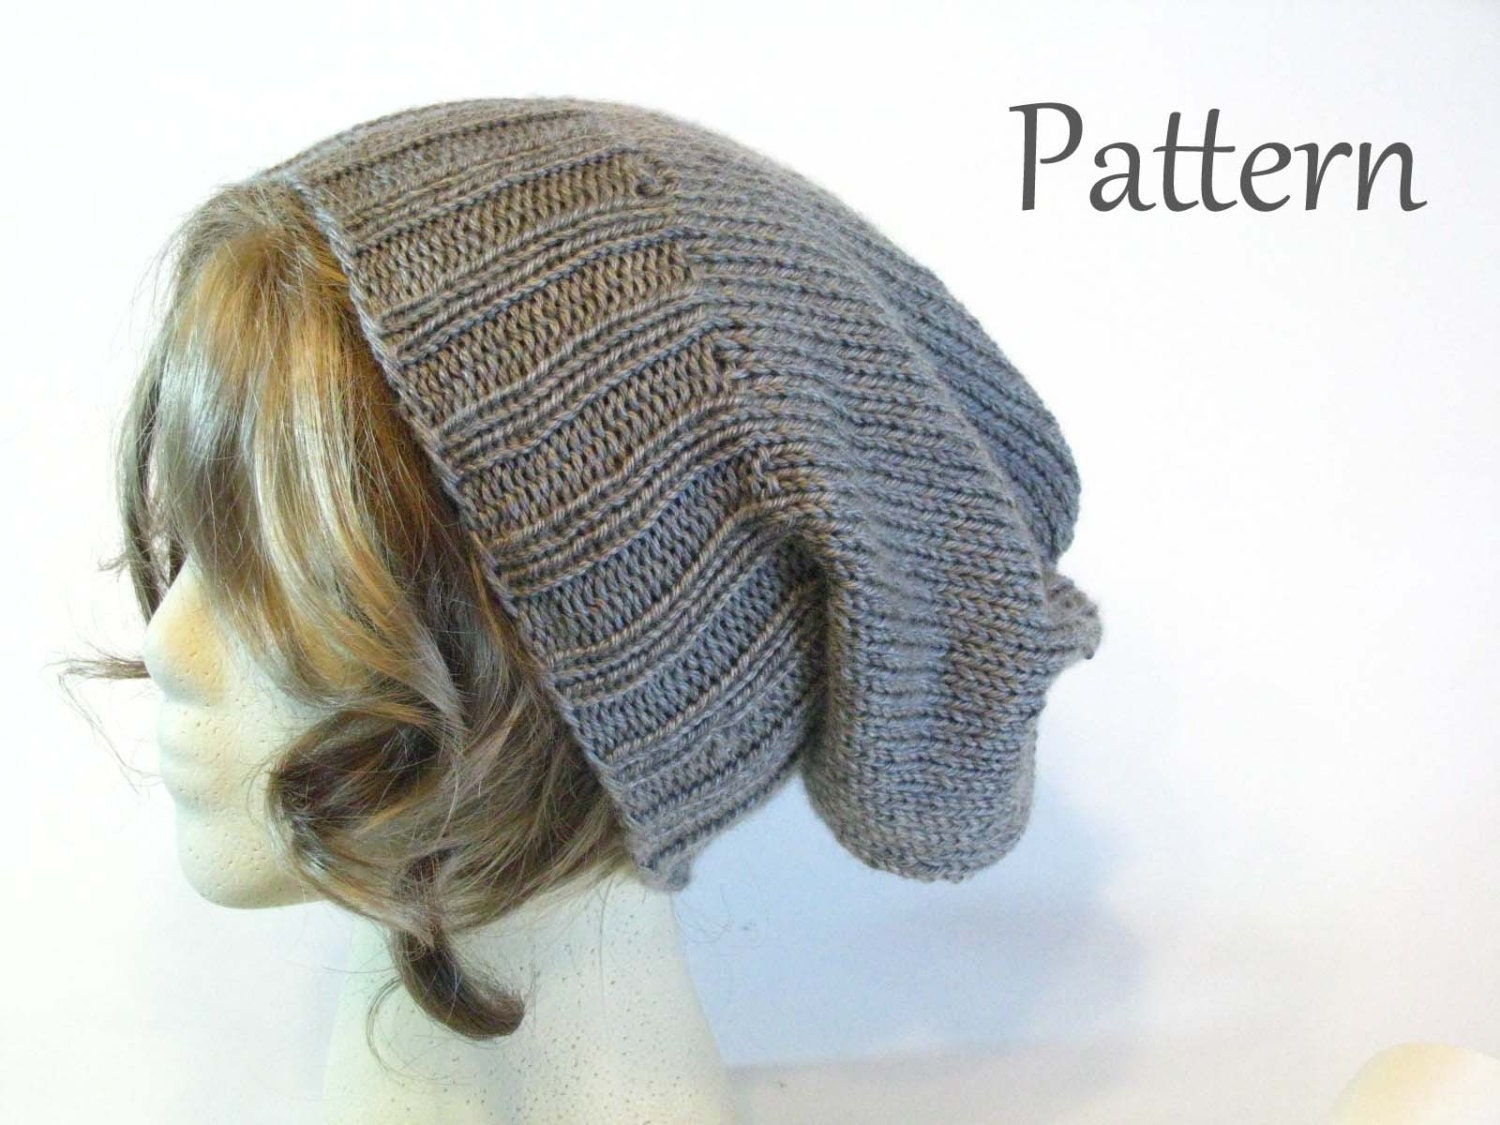 Knitting Beanie Patterns : Pattern good karma slouchy knit beanie hat